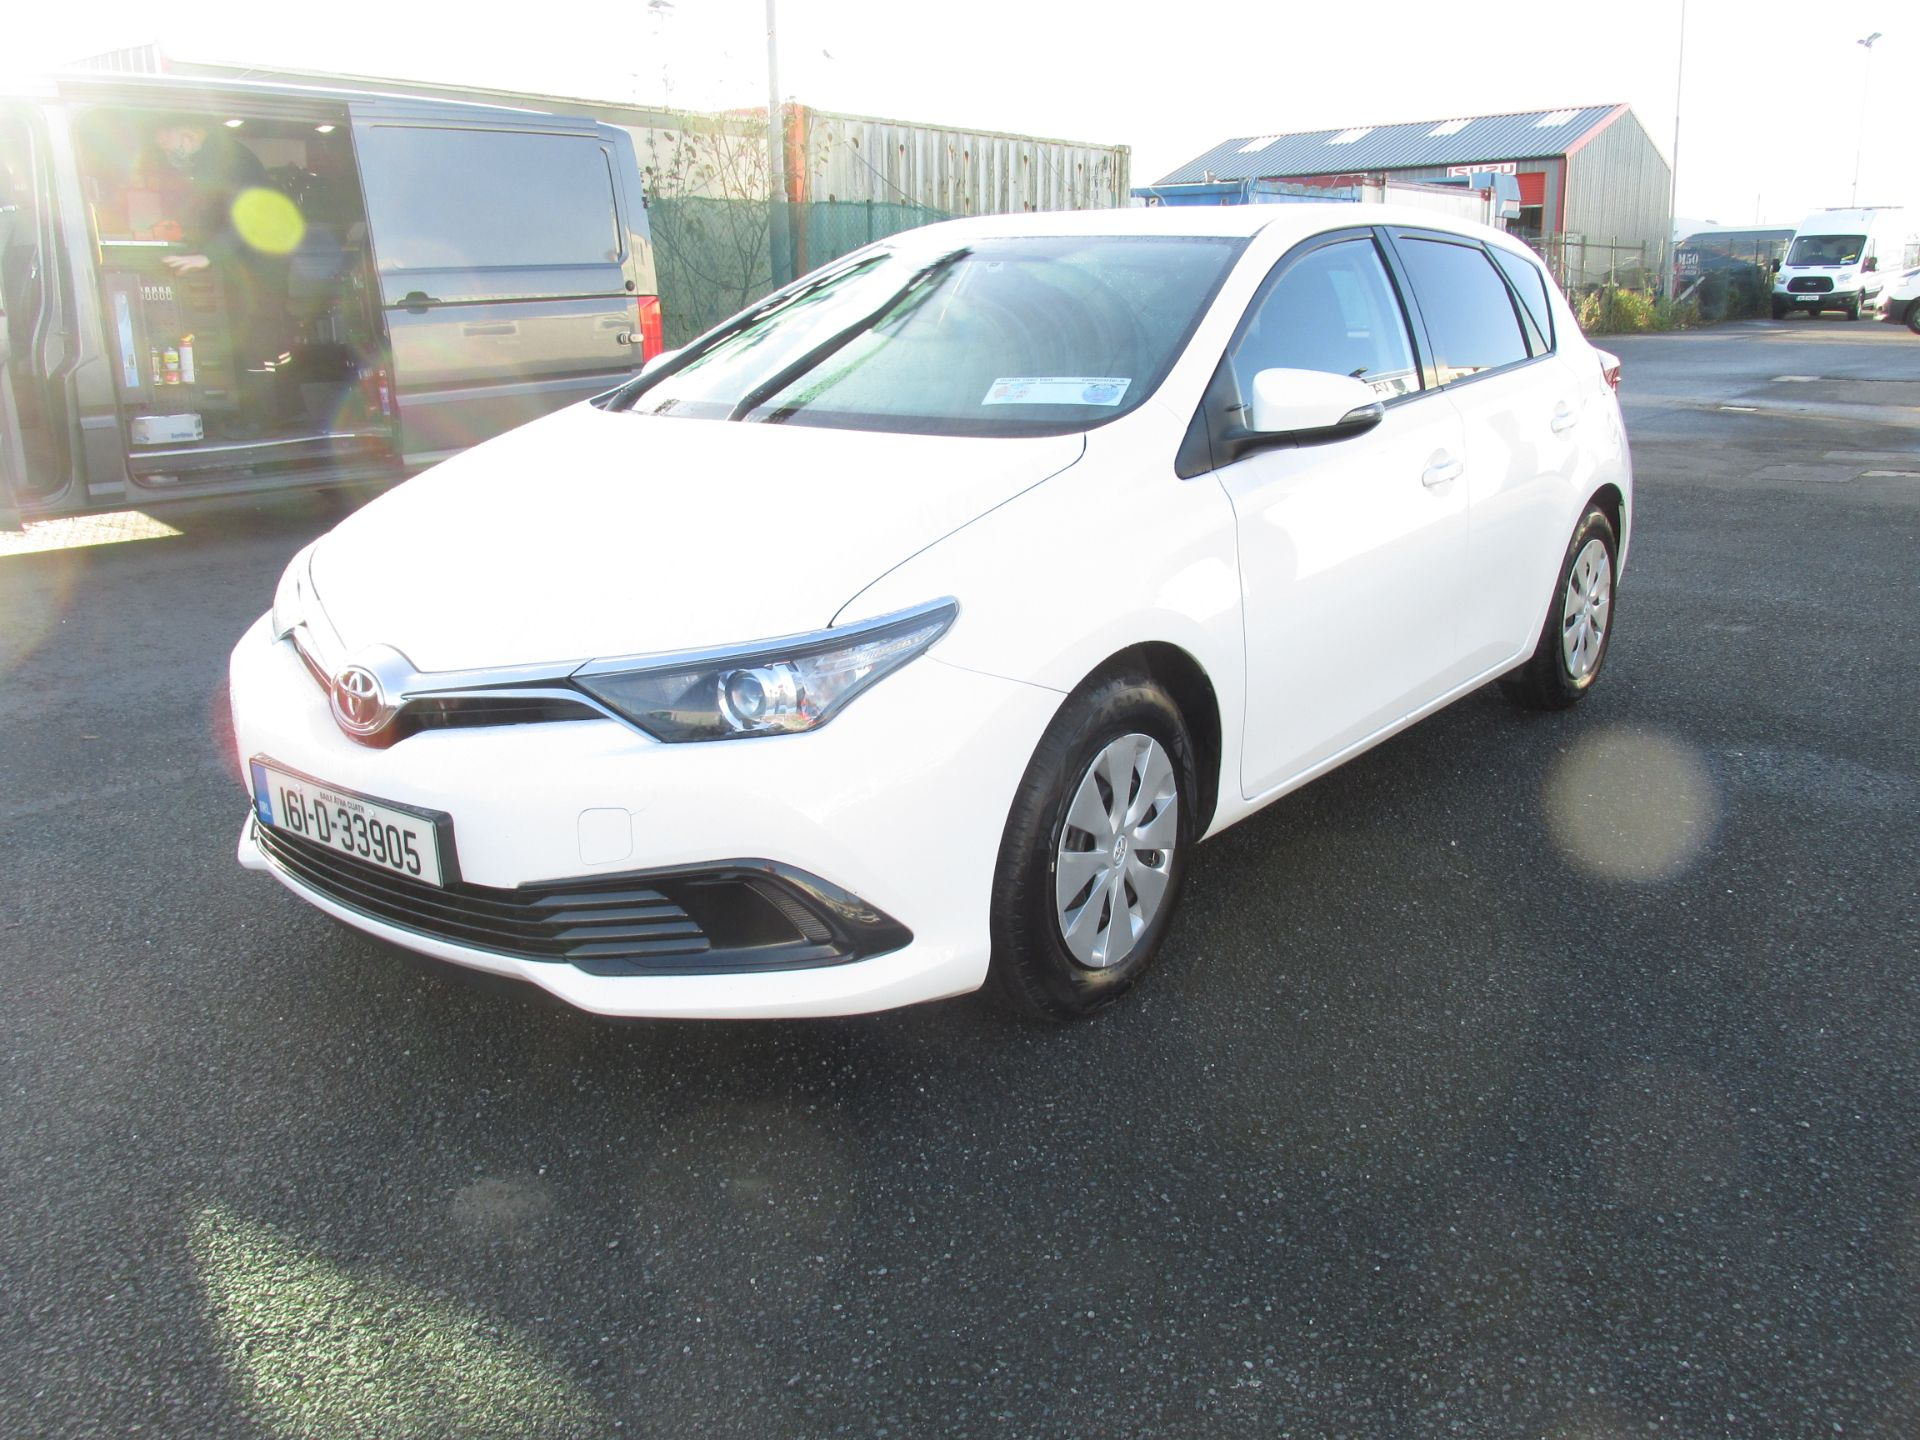 2016 Toyota Auris 1.4d-4d Terra 4DR click and collect call sales for more info (161D33905) Thumbnail 3